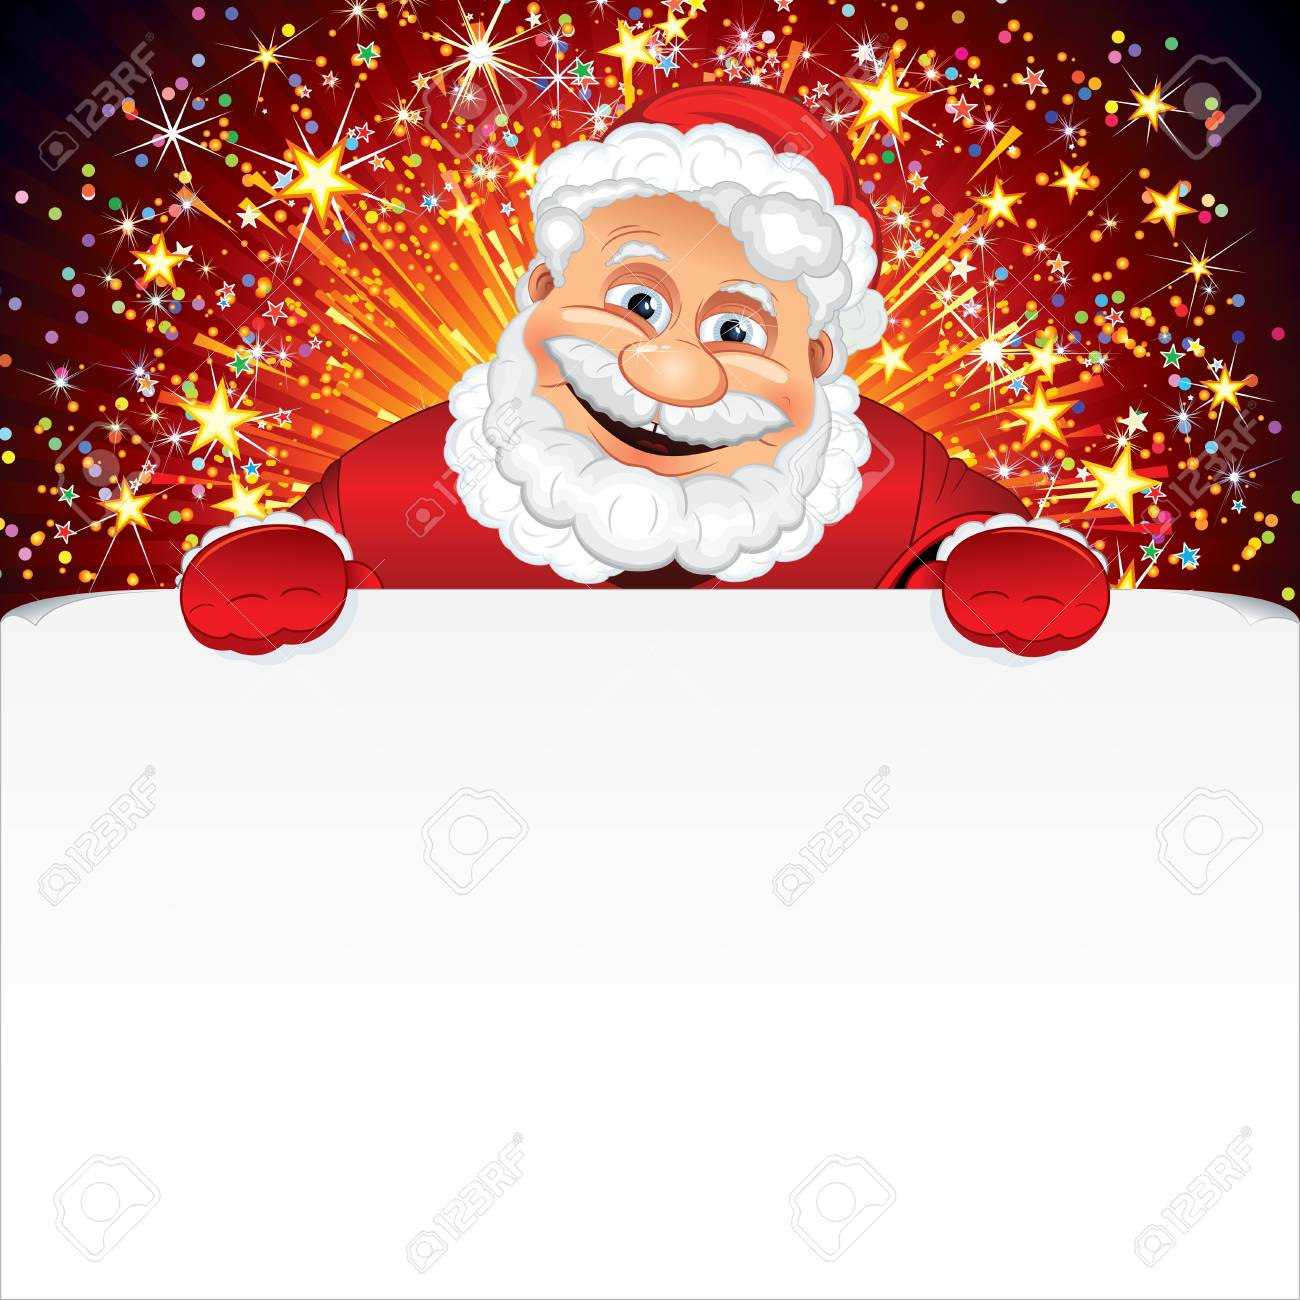 Santa Claus Greeting Card Stock Photo Picture And Royalty Free